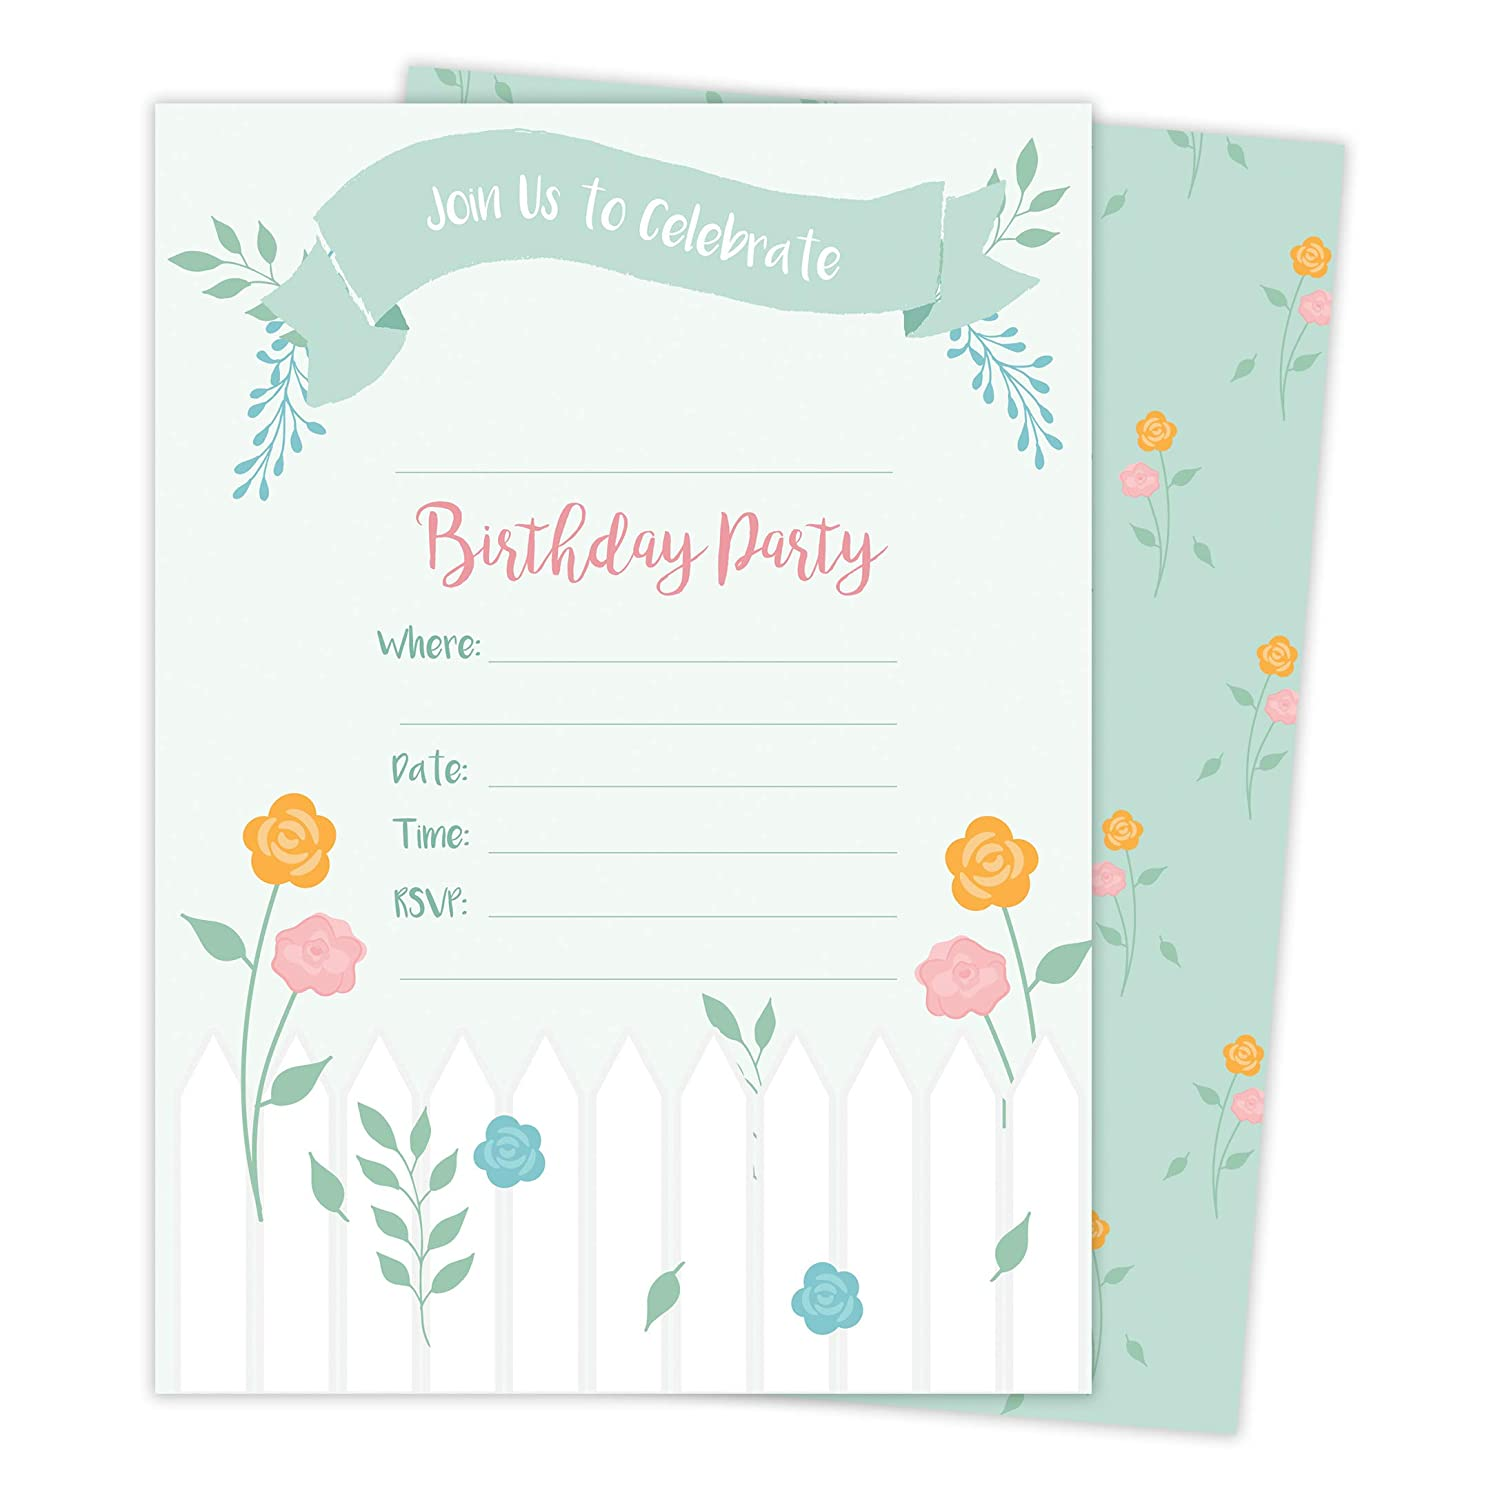 Garden 3 Happy Birthday Invitations Invite Cards 25 Count With Envelopes Seal Stickers Vinyl Girls Boys Kids Party